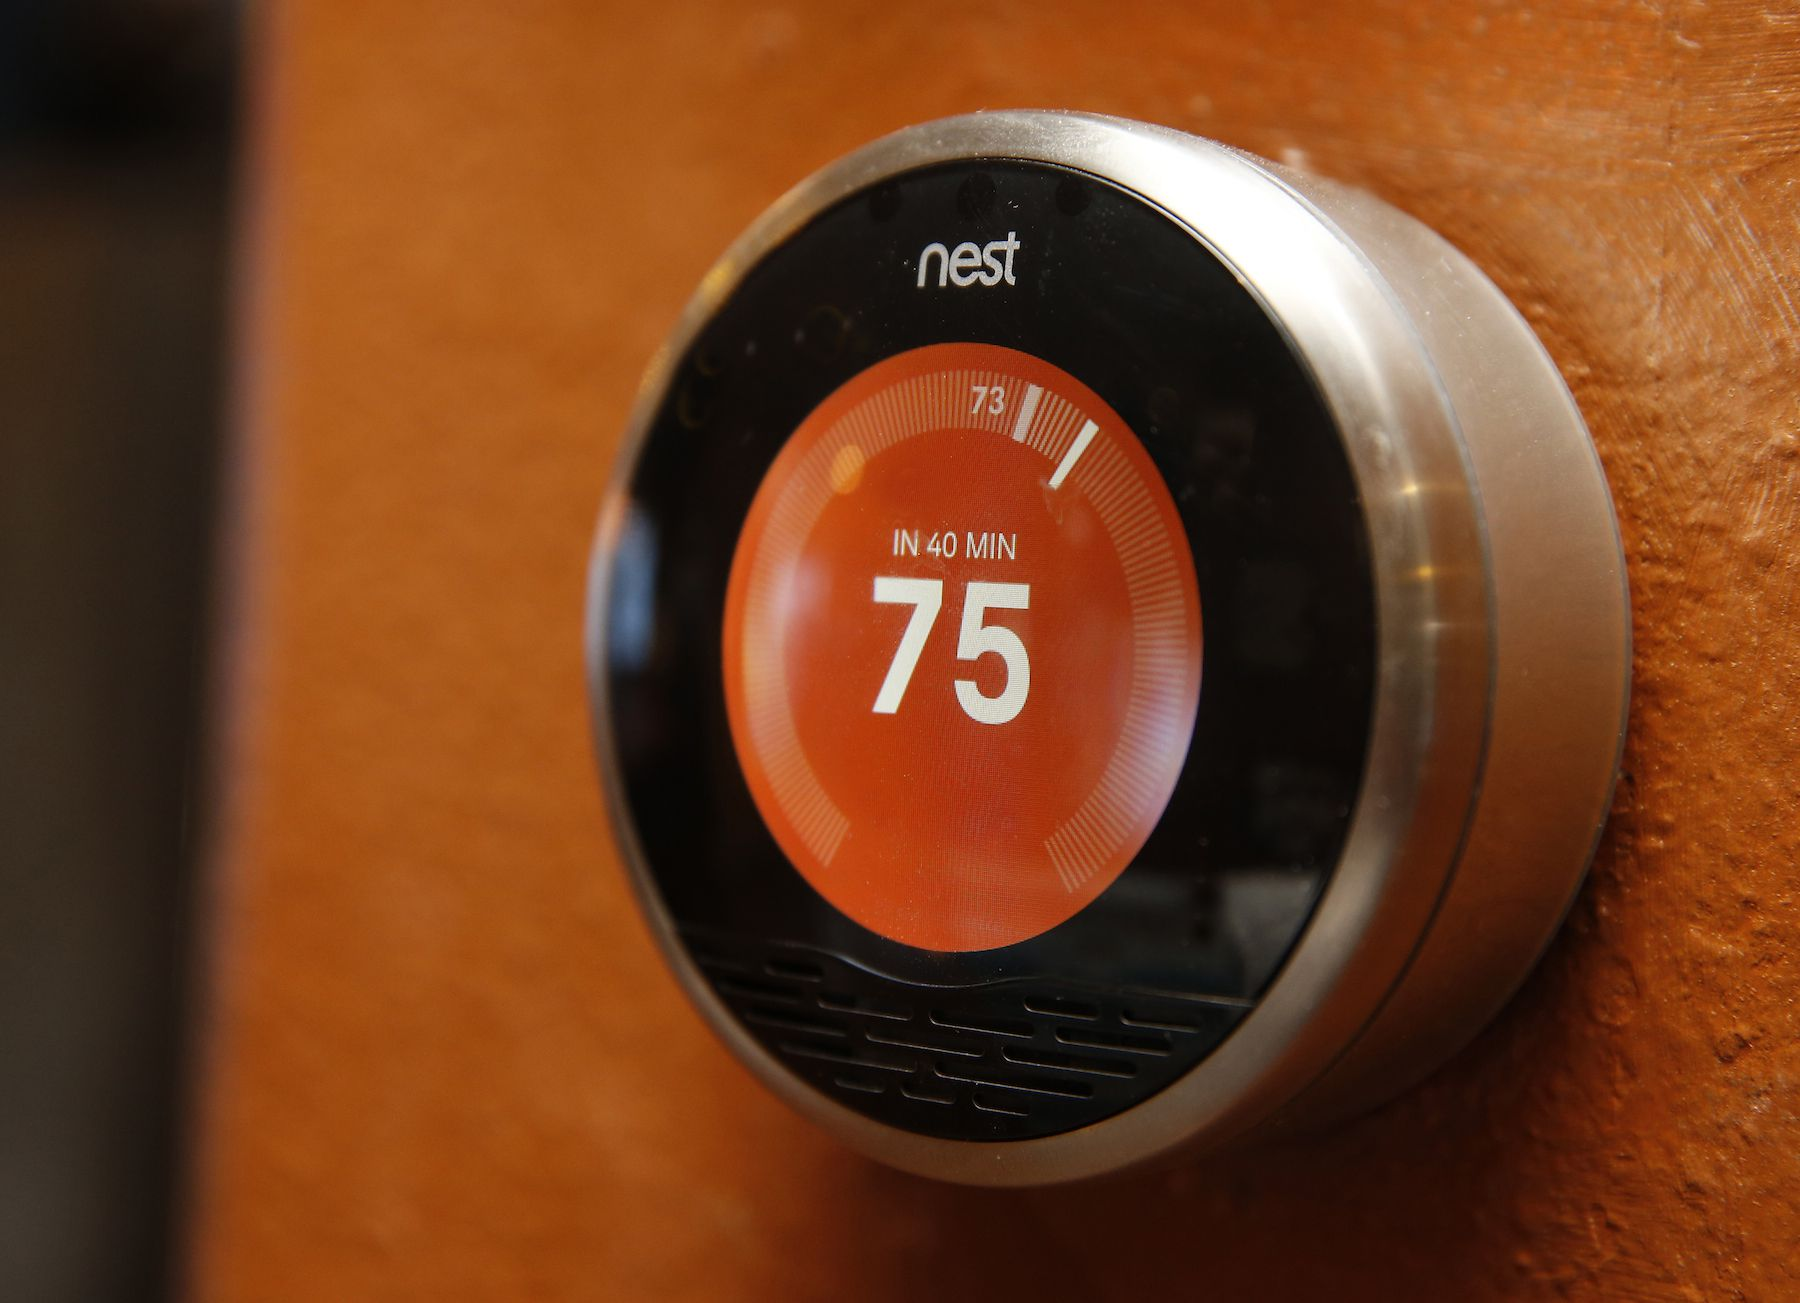 "A Nest thermostat is installed in a home in Provo, Utah, January 15, 2014. Google Inc took its biggest step to go deeper into consumers' homes, announcing a $3.2 billion deal January 13, 2014 to buy smart thermostat and smoke alarm-maker Nest Labs Inc, scooping up a promising line of products and a prized design team led by the ""godfather"" of the iPod. REUTERS/George Frey (UNITED STATES - Tags: BUSINESS SCIENCE TECHNOLOGY) - RTX17ON5"